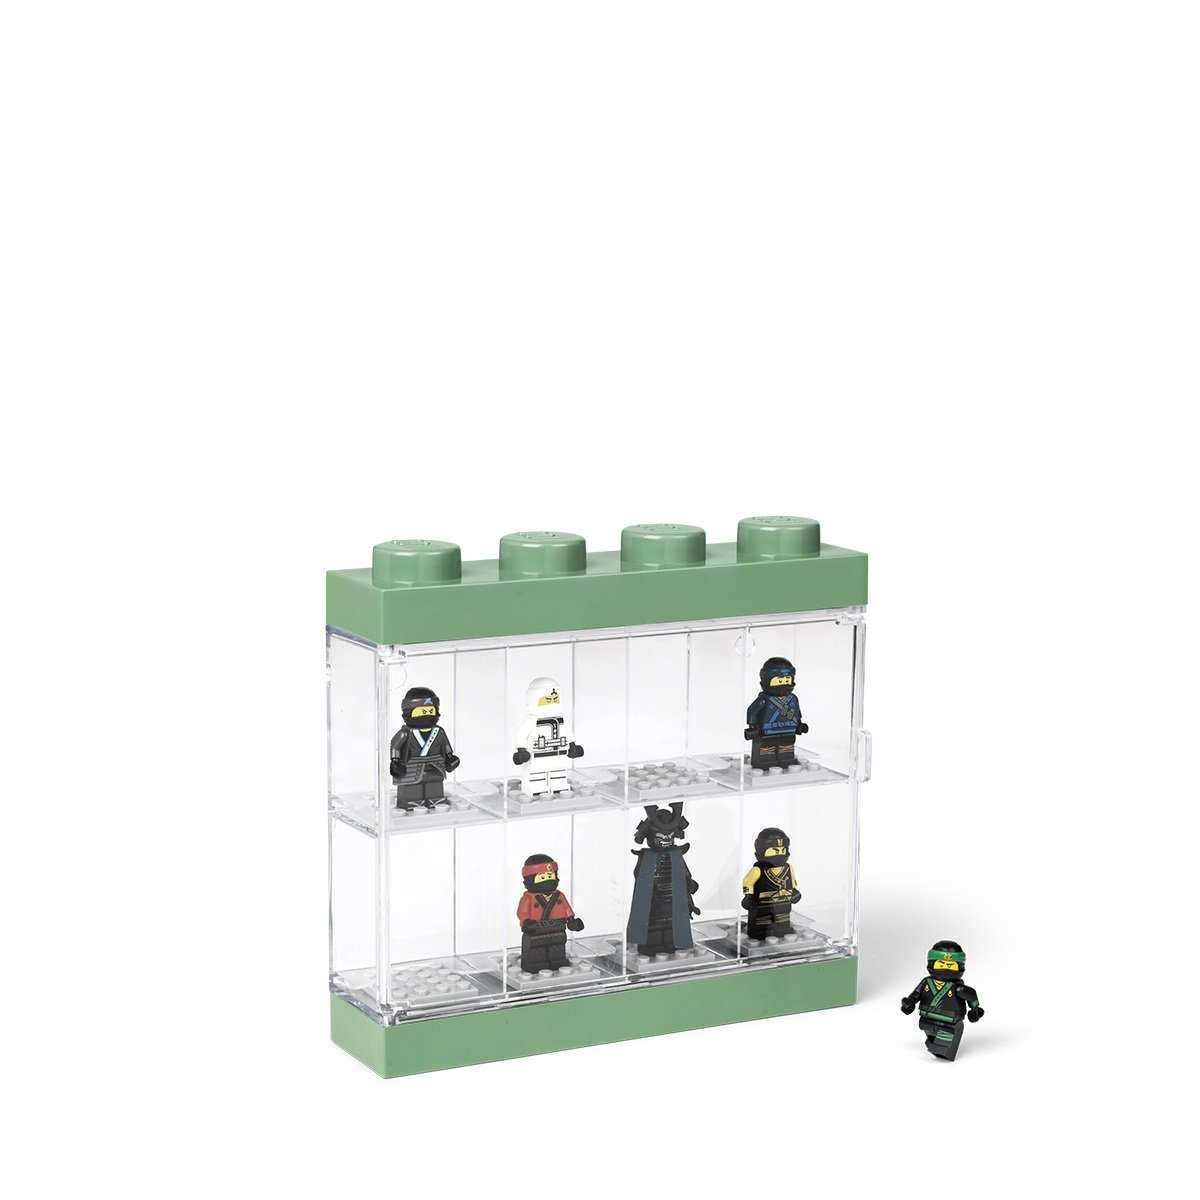 Ninjago Movie Minifigure Display - ninja toys for kids